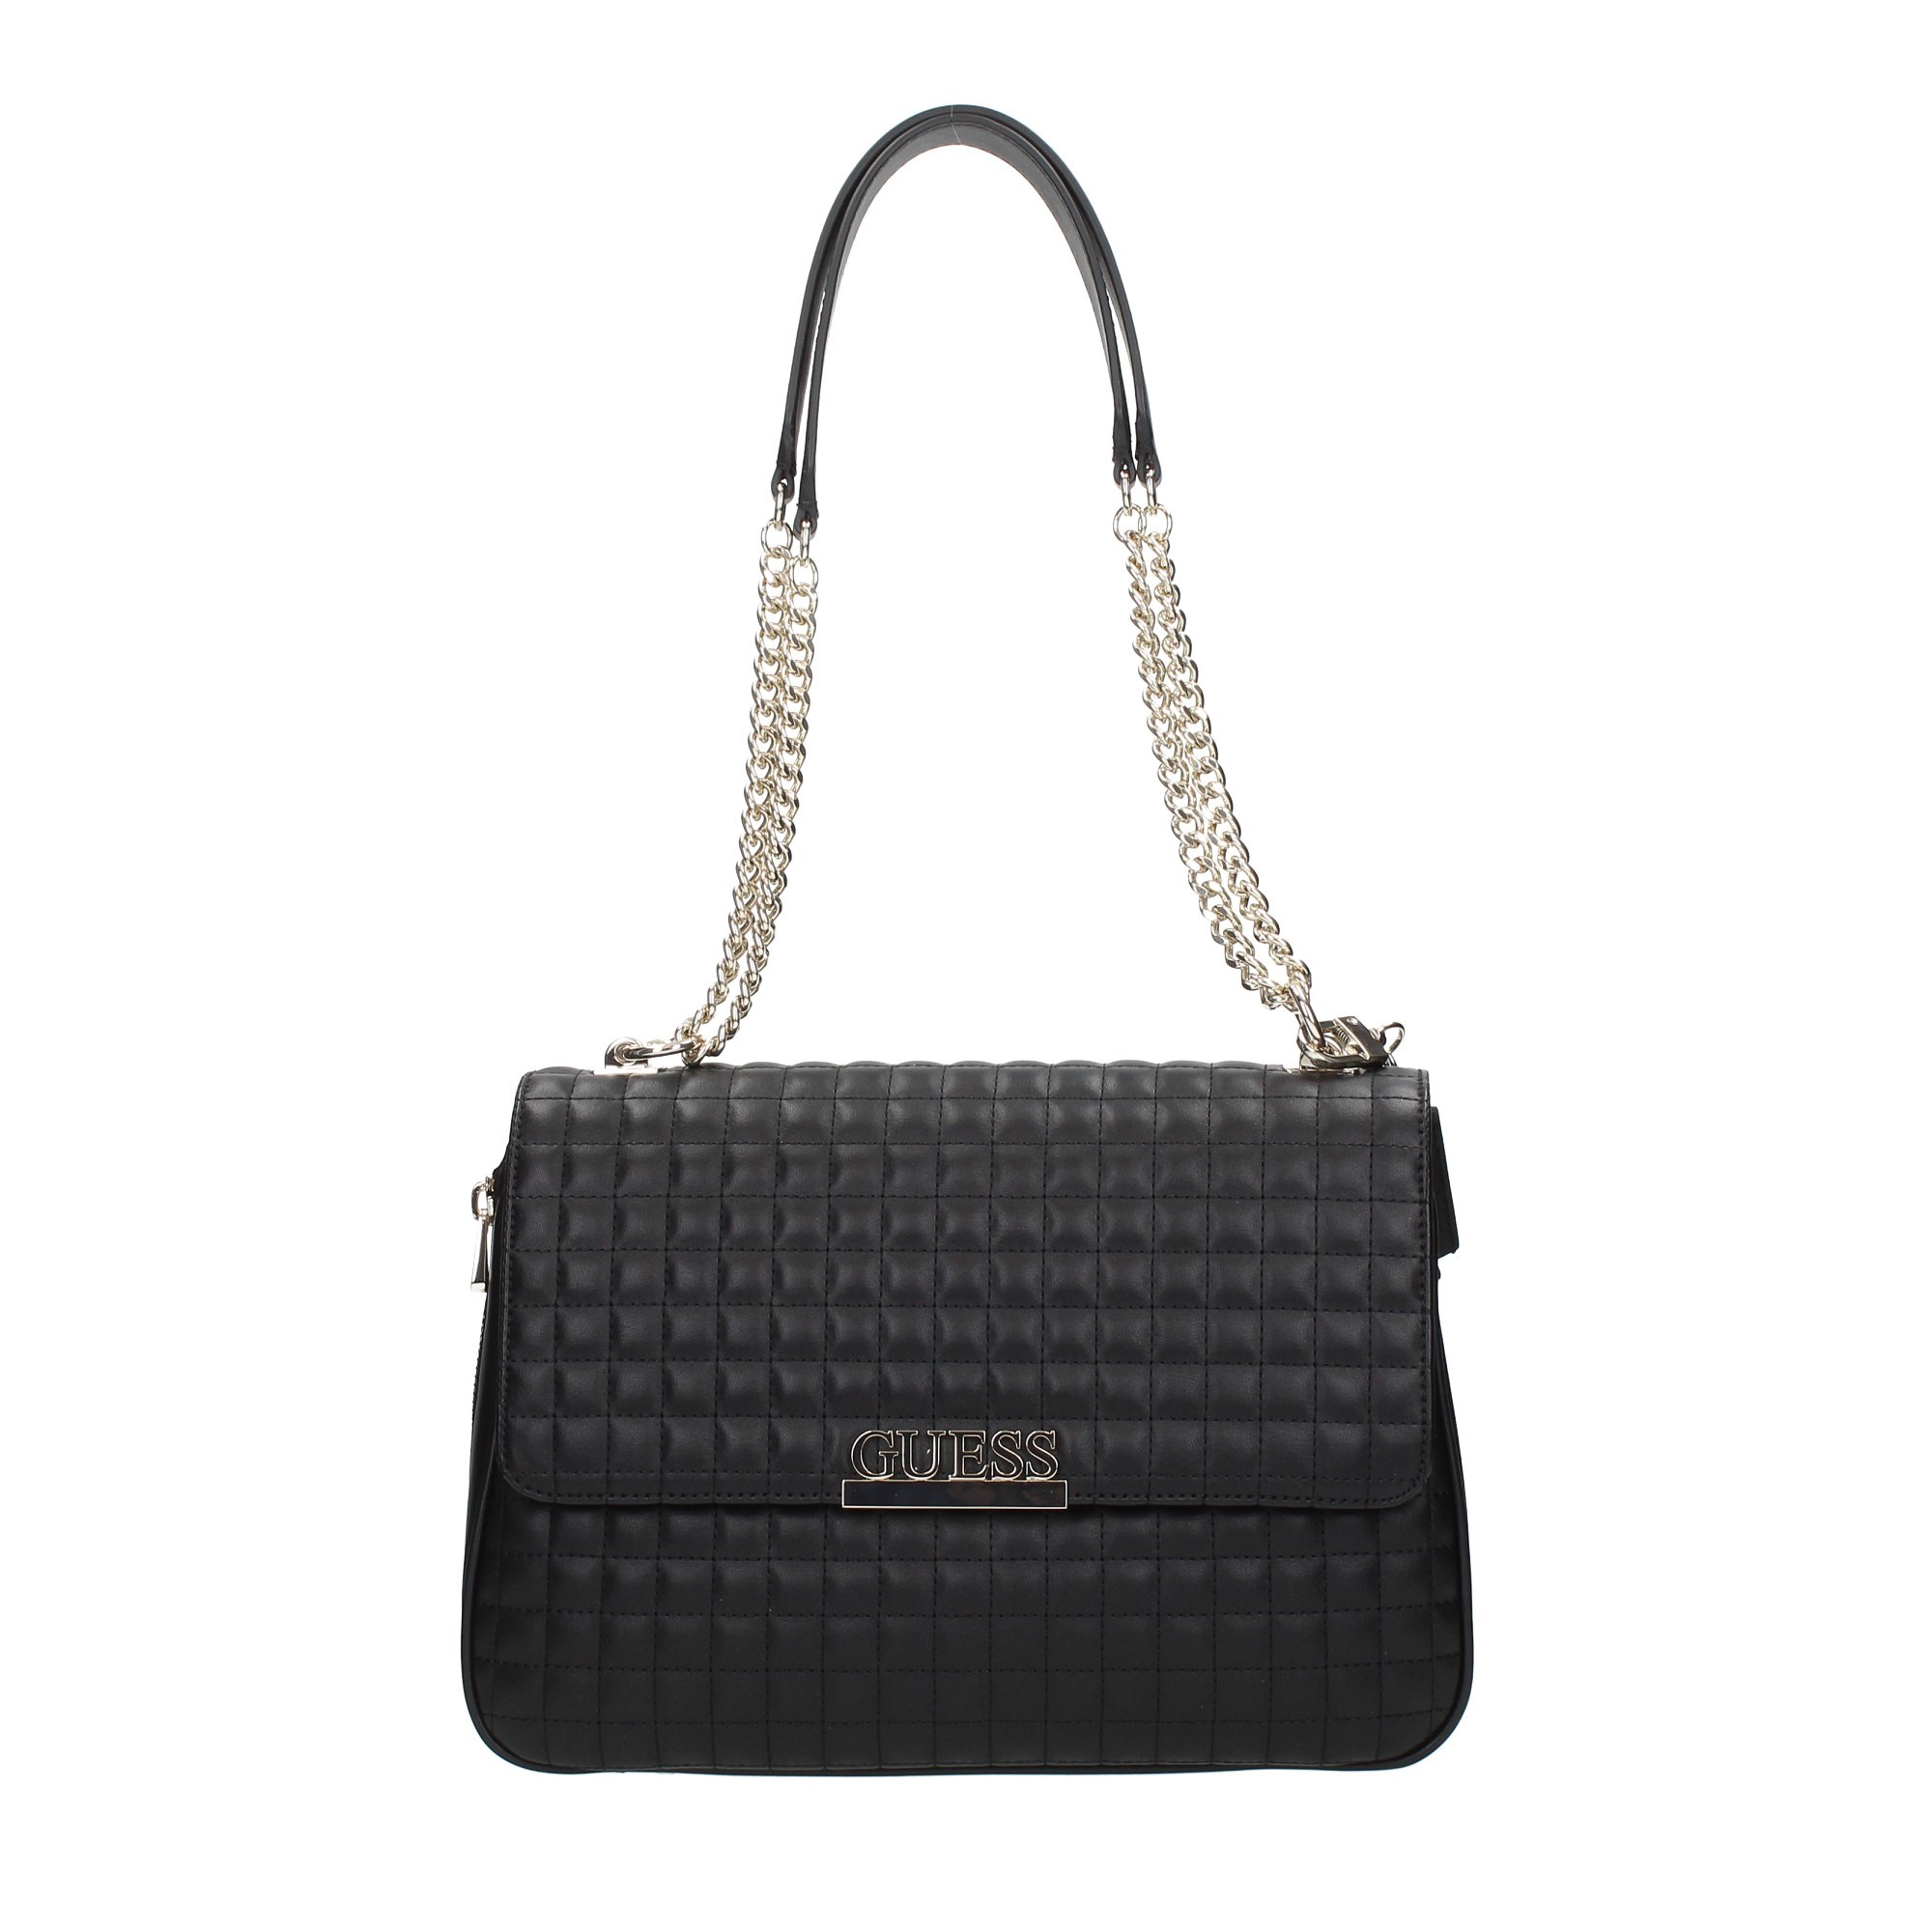 Guess Borse Accessories Women Shoulder Bags Black HWVG77/40200